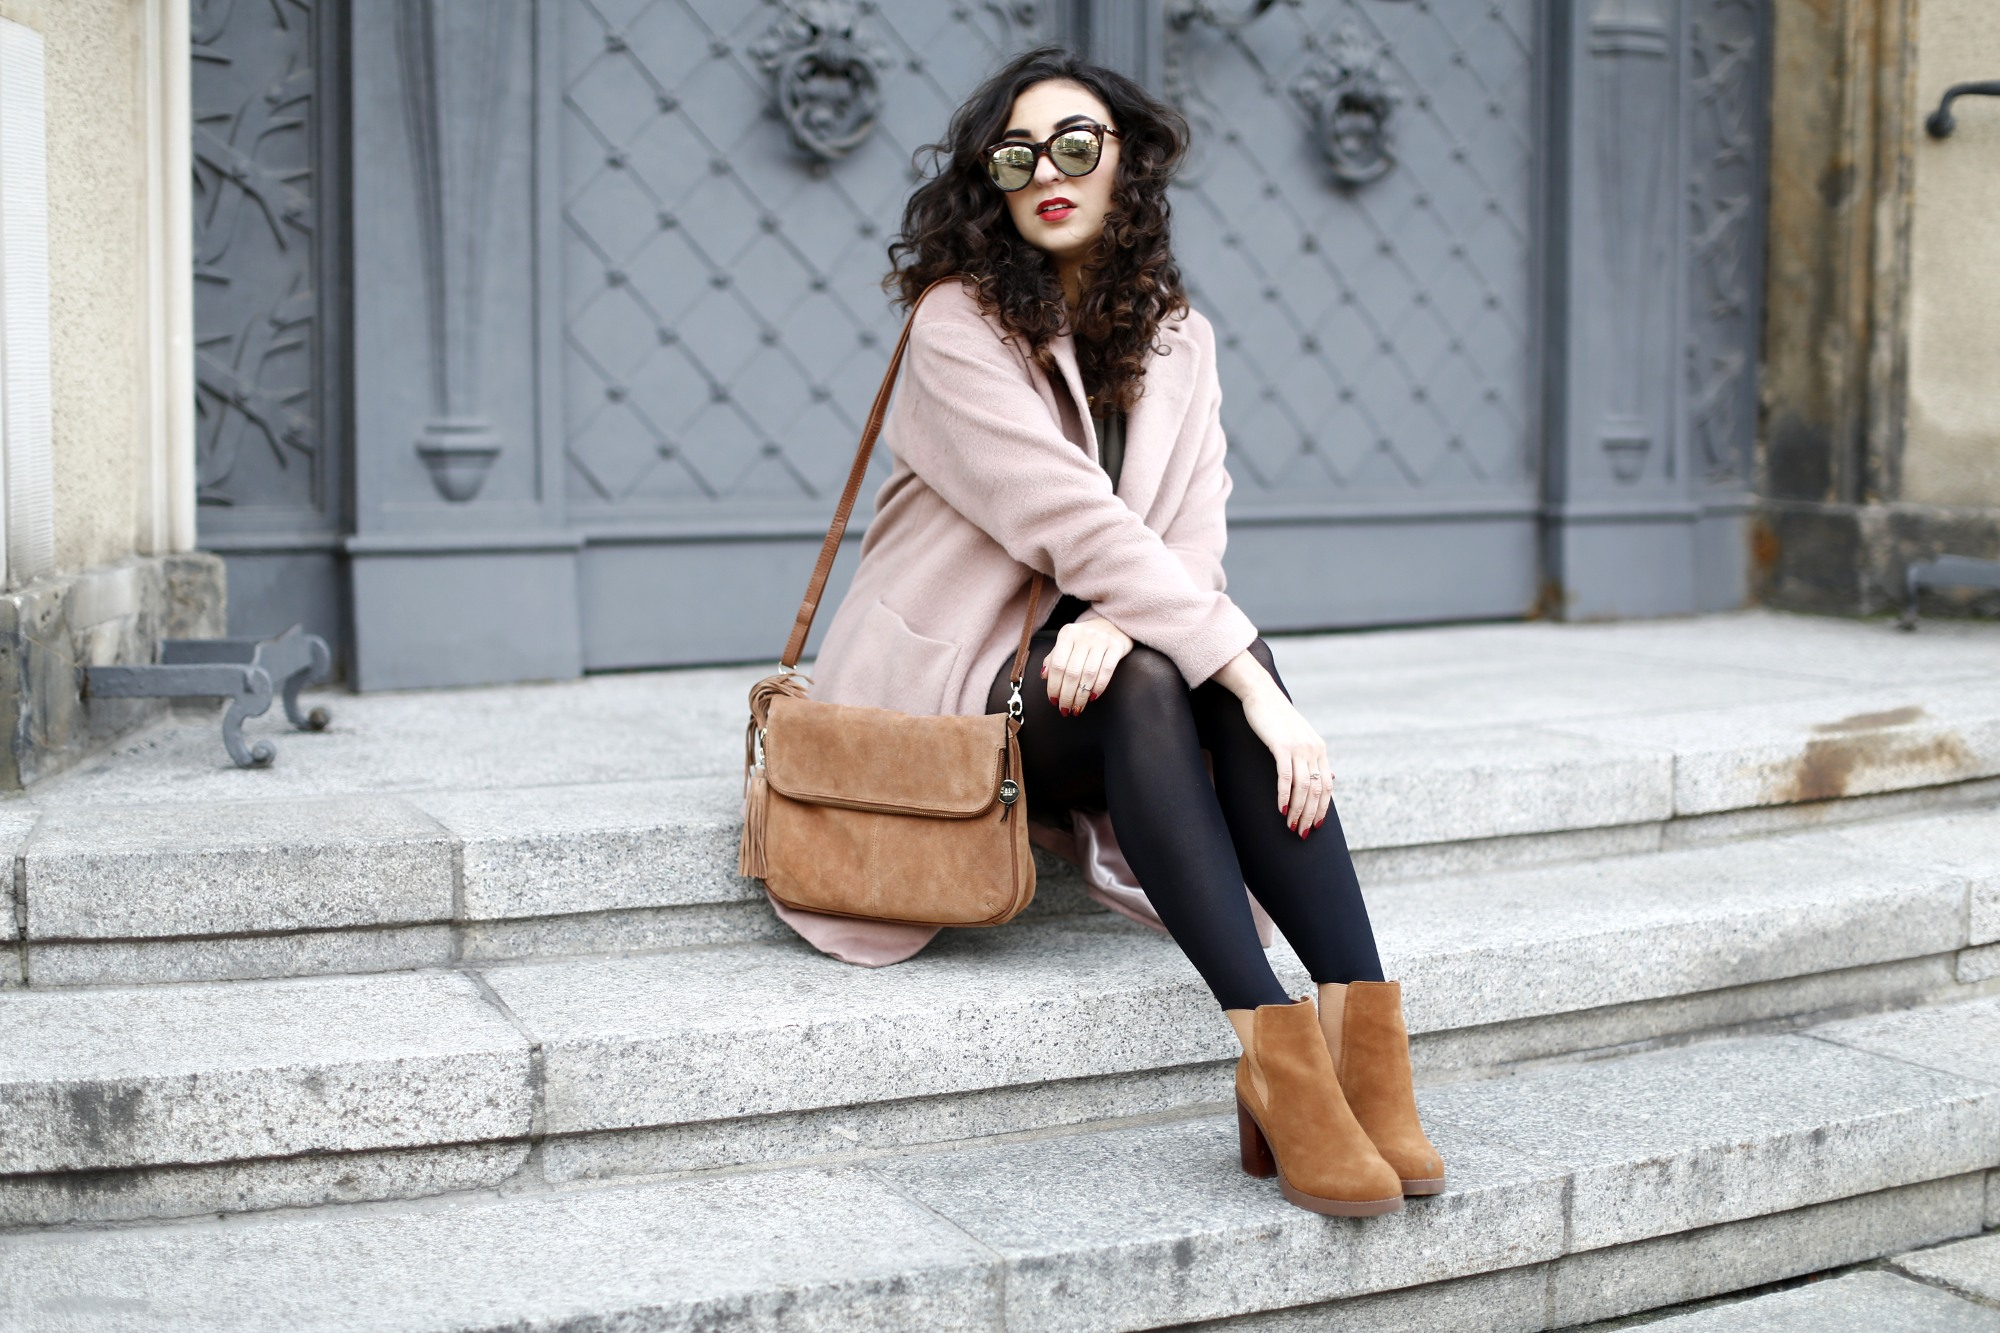 khaki dress oasis fashion pink coat brown suede boots camel bag streetstyle winter look herbst outfit fashionblogger modeblog berlin samieze